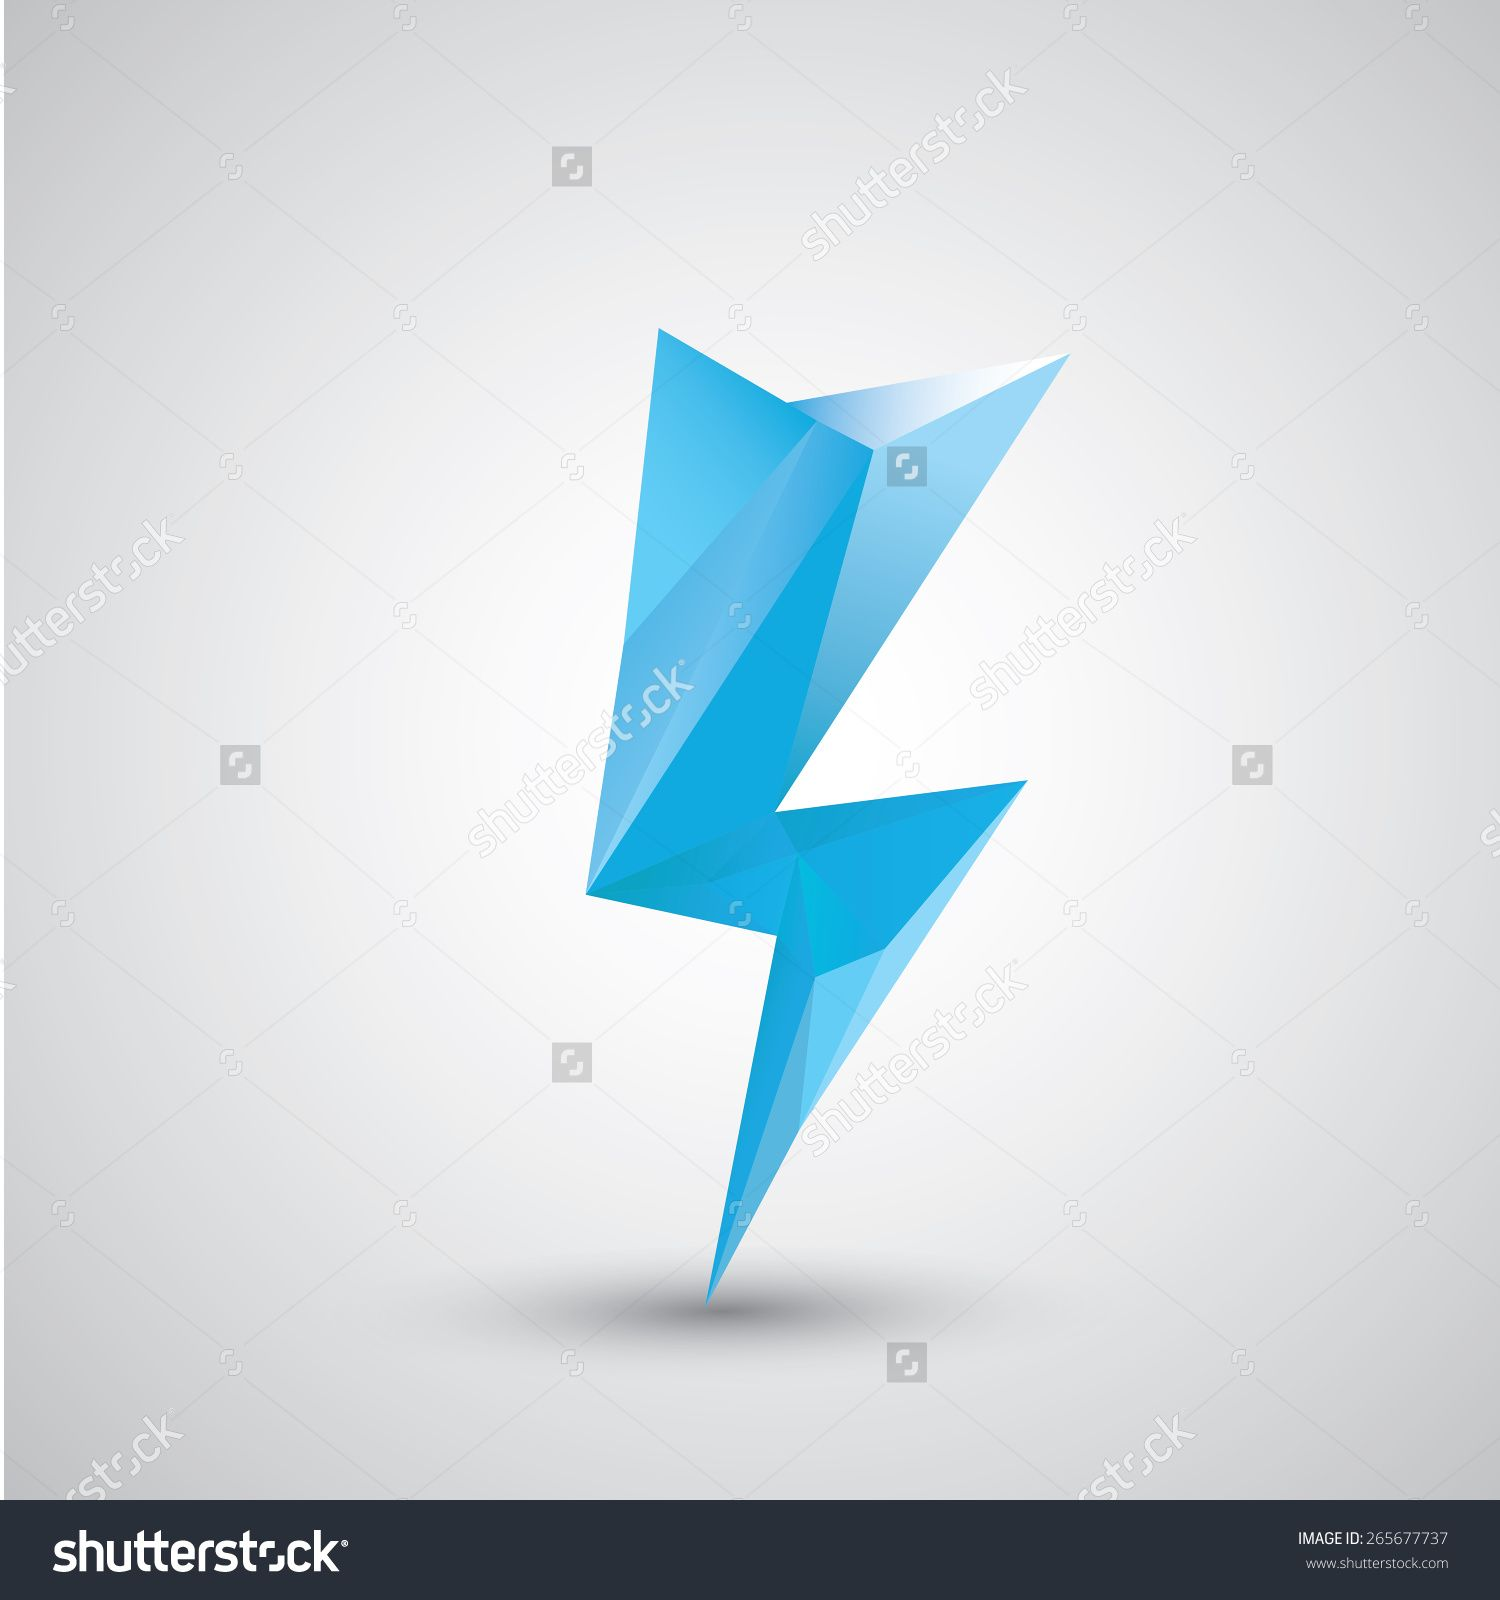 lightning bolt geometric - Google Search | Tattoo Ideas ... for Vector Lighting Bolt  589hul